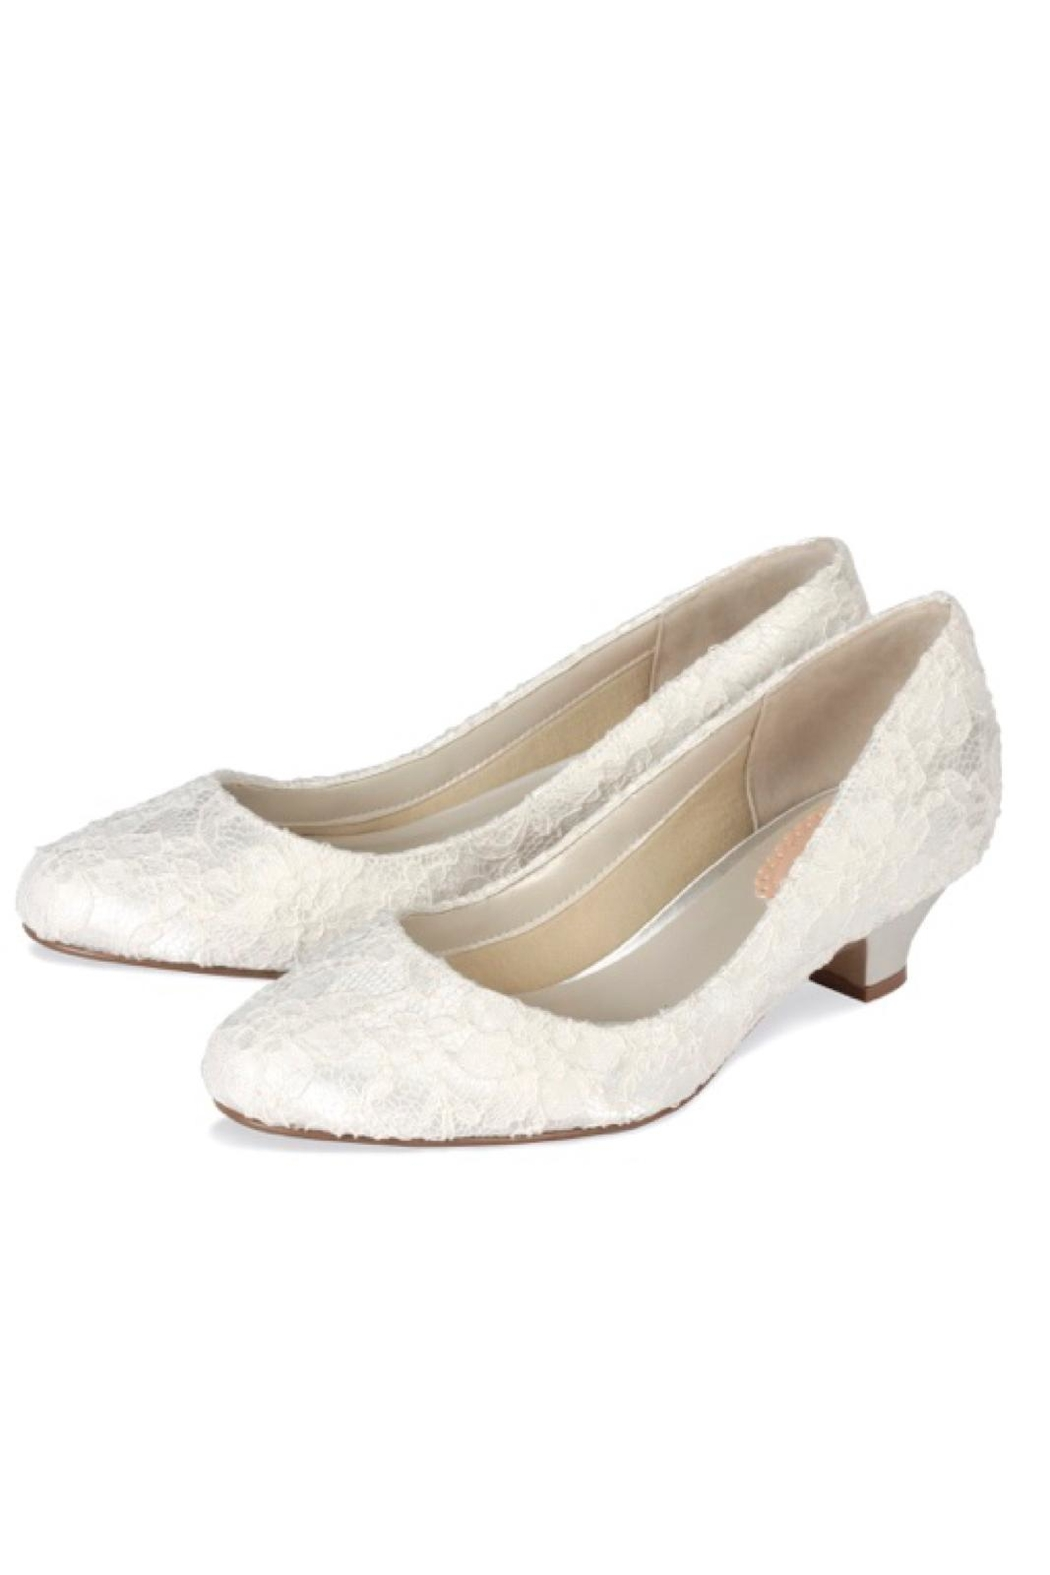 pink paradox London Bonbon Ivory Lace Shoes - Front Full Image